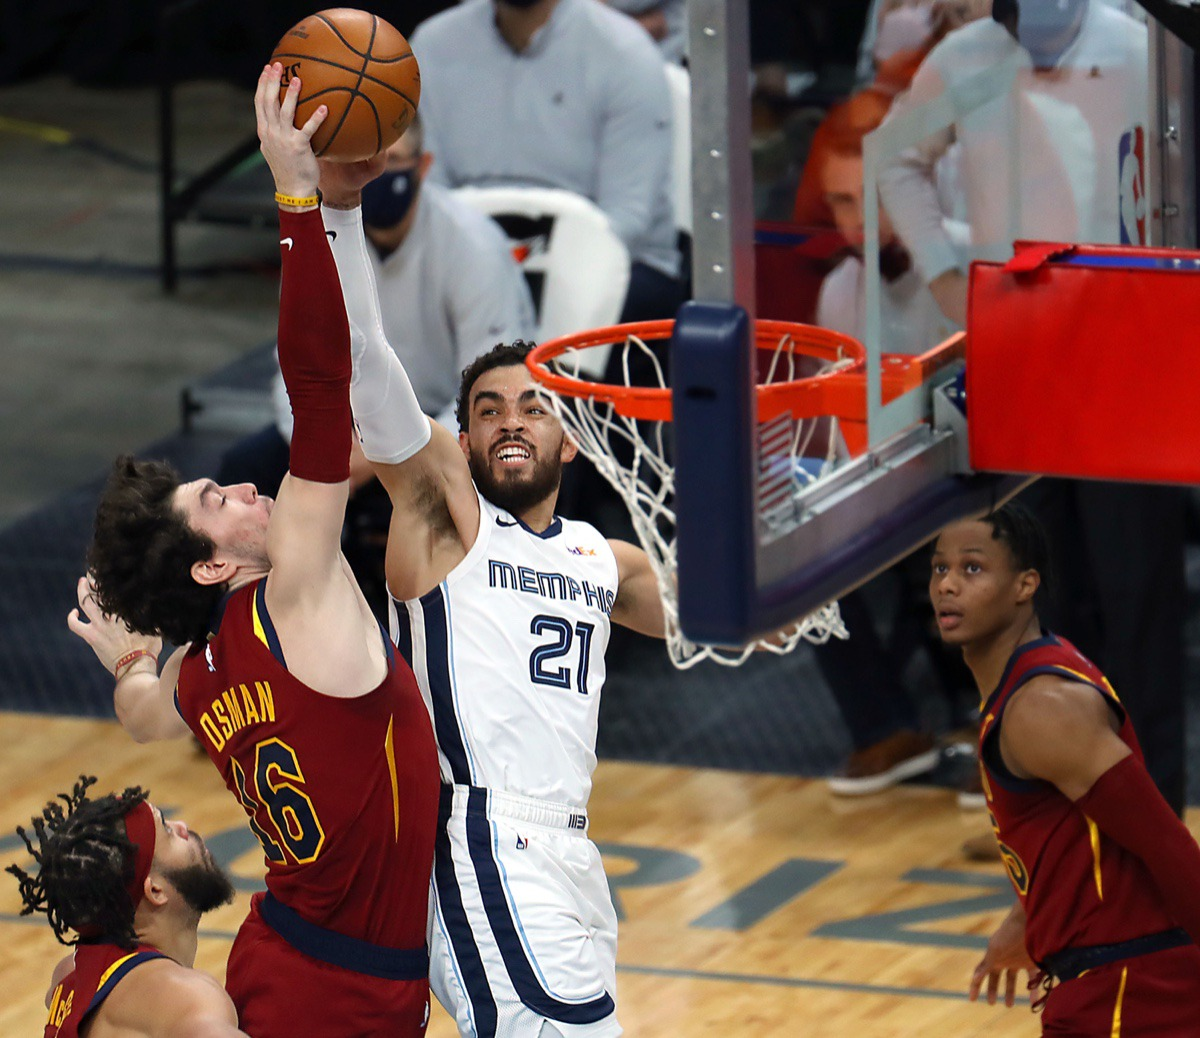 <strong>The Grizzlies&rsquo; Tyus Jones (21) tries to shoot over Cleveland&rsquo;s Cedi Osman (16) on Jan. 7, 2021, at FedExForum.</strong> (Patrick Lantrip/Daily Memphain)